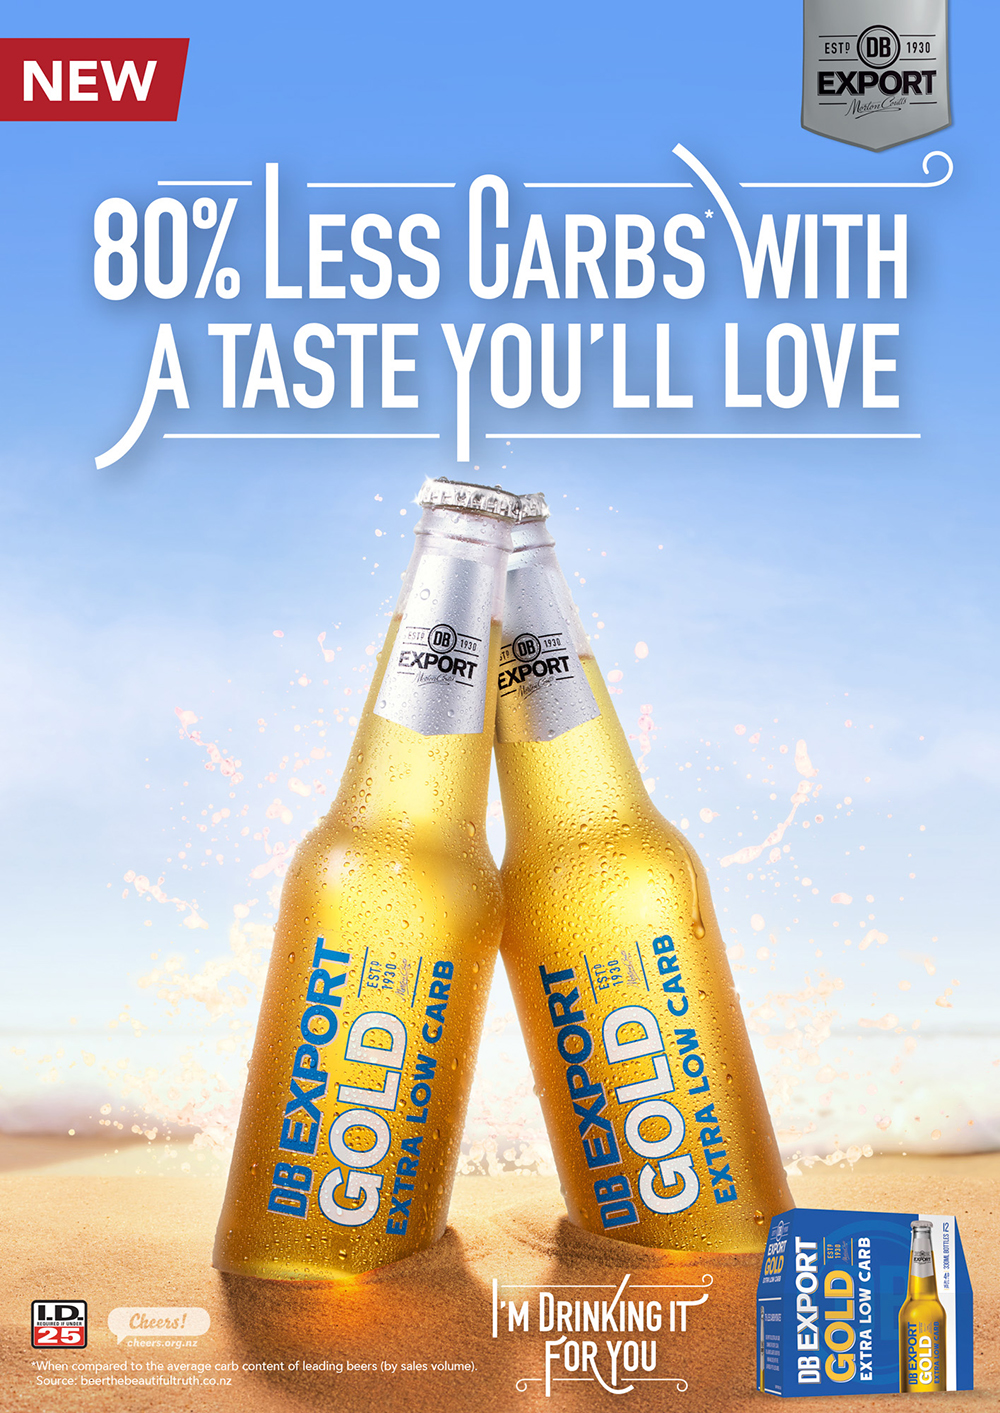 DBB0509 DB Export Gold EXTRA Low Carb - OurWest FP ad 190x270_FA.jpg